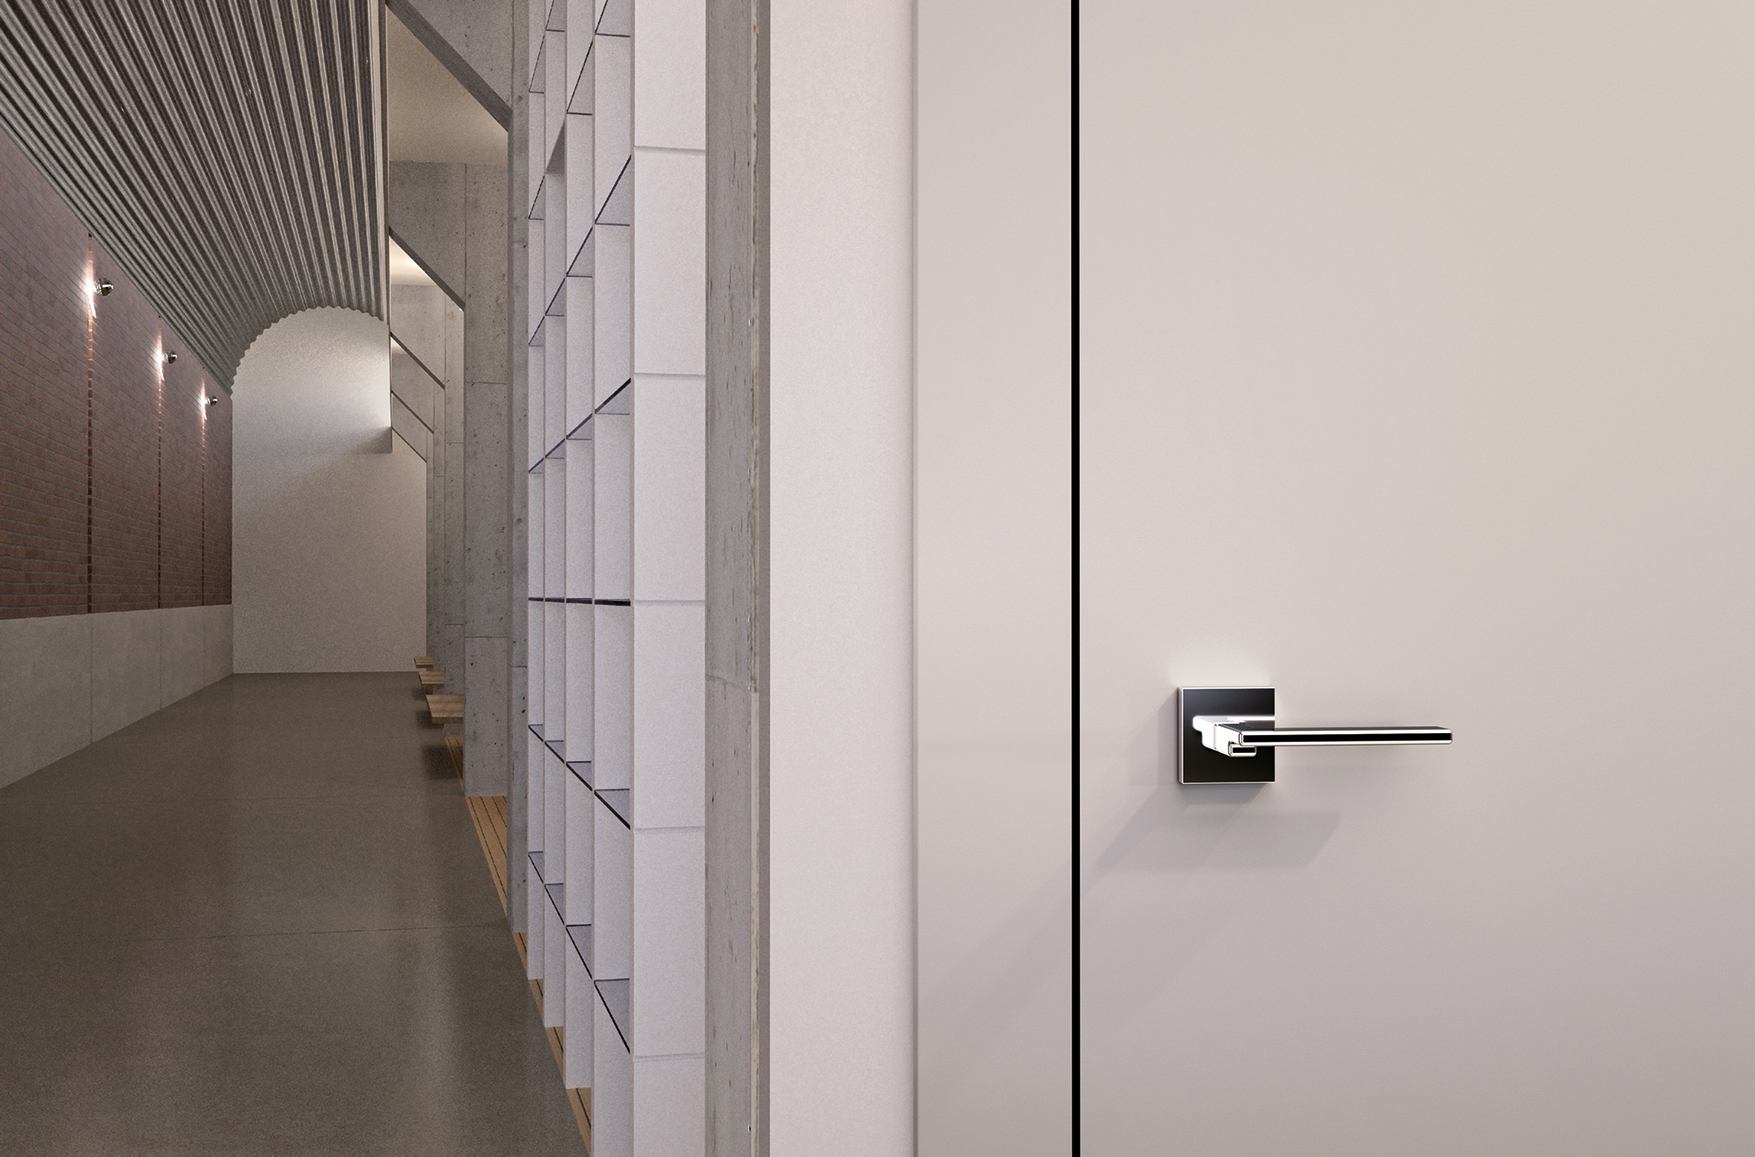 Project Specification Group adds design-led architectural ironmongery to its offering